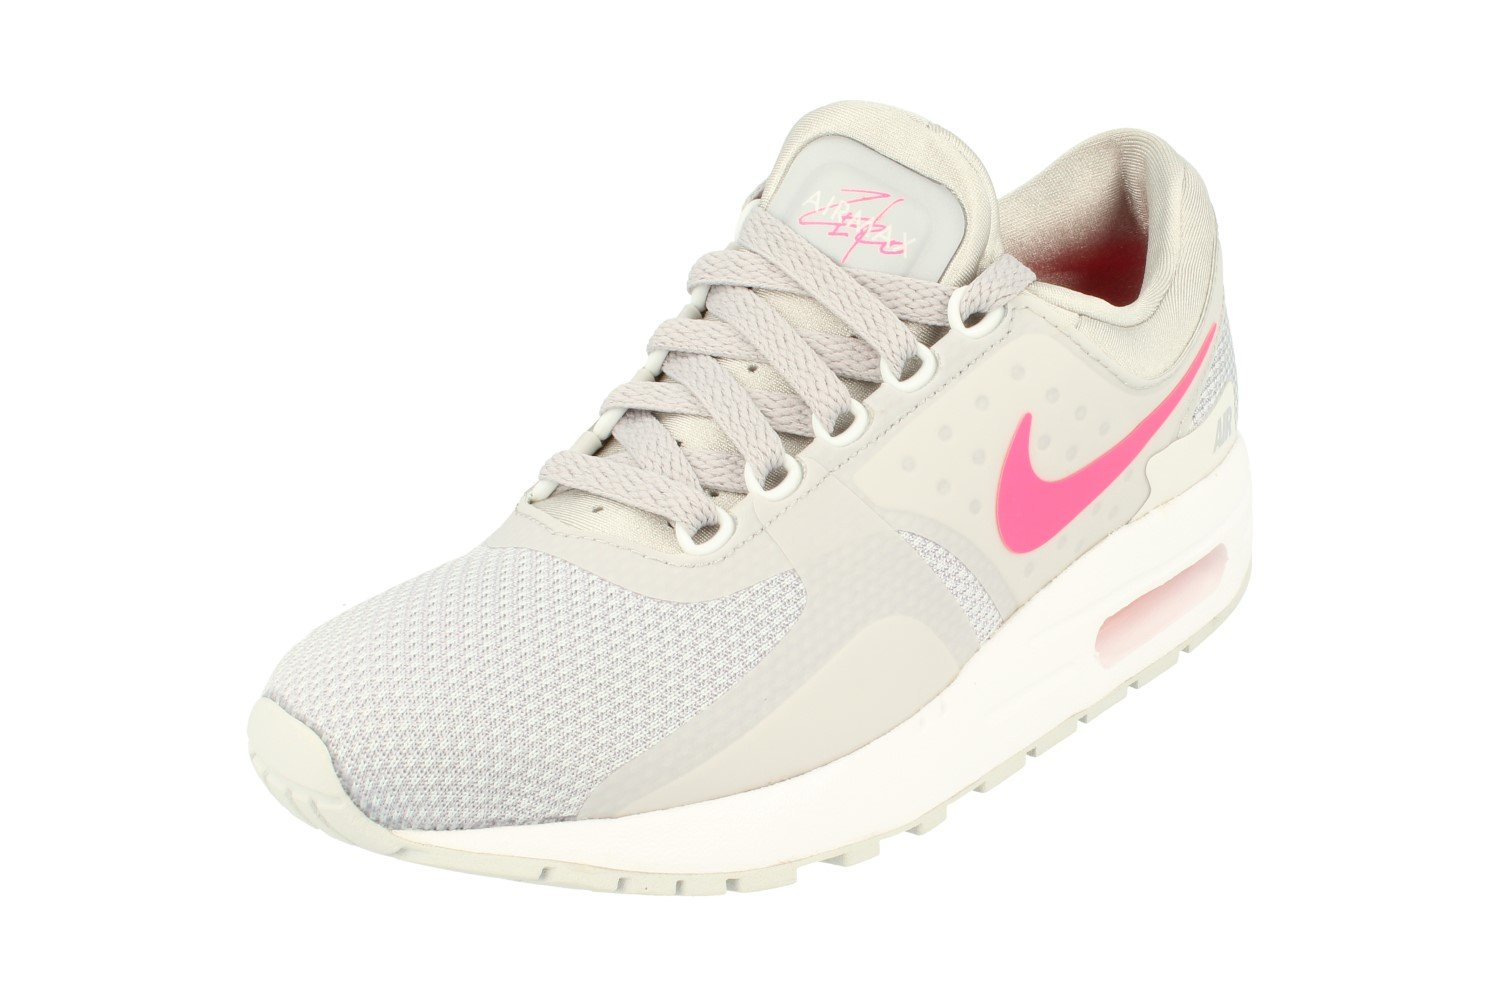 Nike Grade-School Air Max Zero Essential Wolf Grey/Racer Pink-White 881229-003 Shoe 3.5Y M US Youth